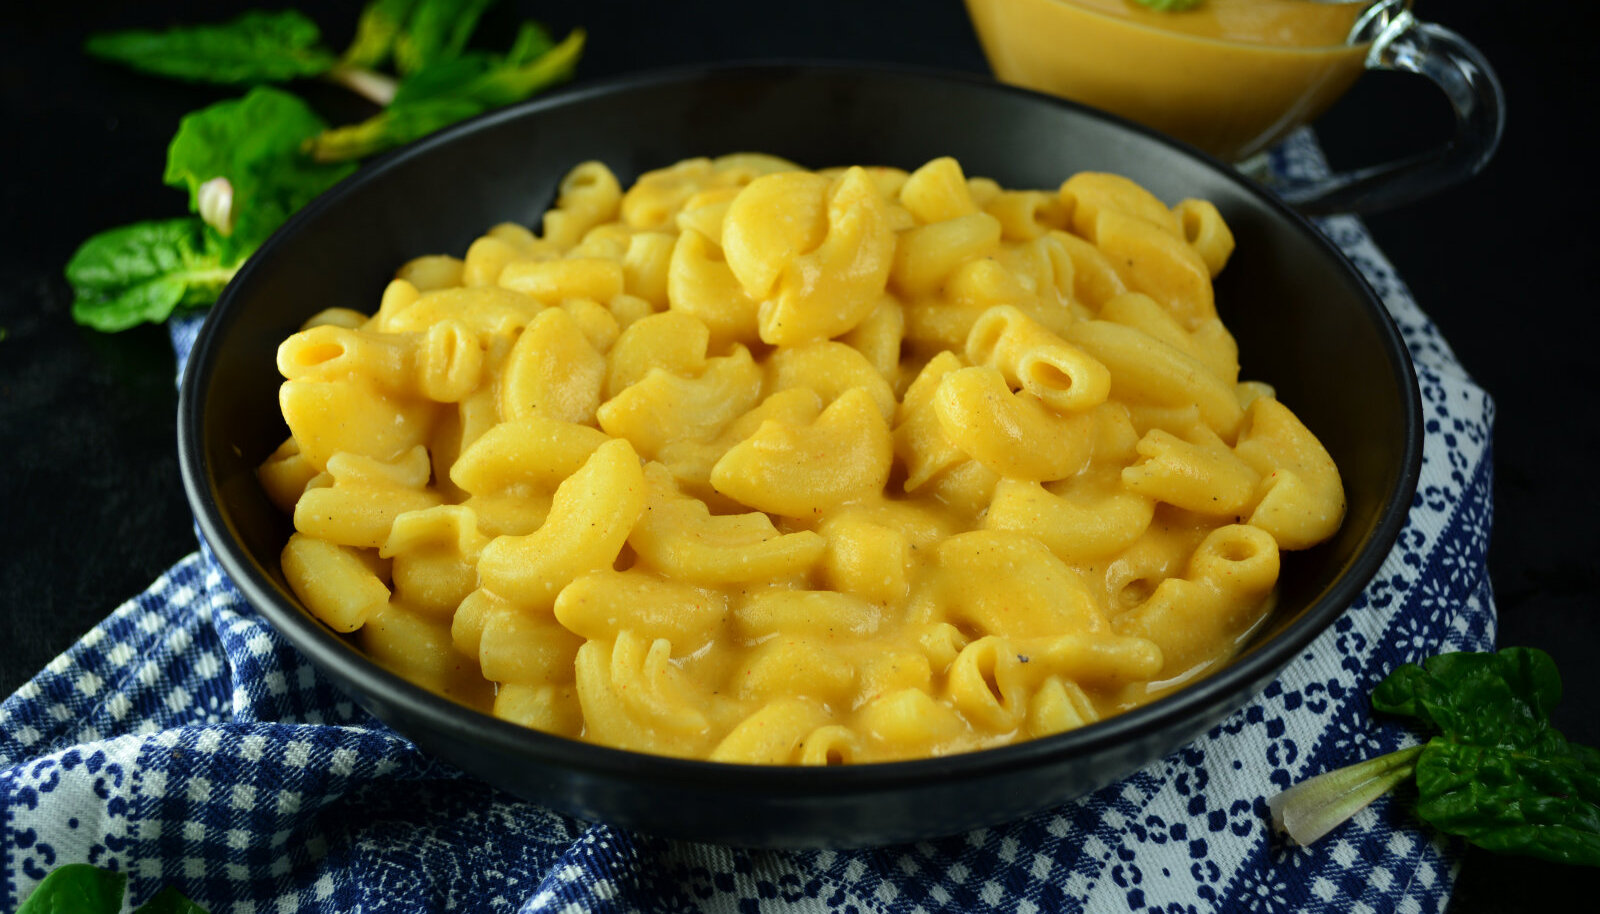 Mac and Cheese ehk maakeeli makaronid juustukastmes.